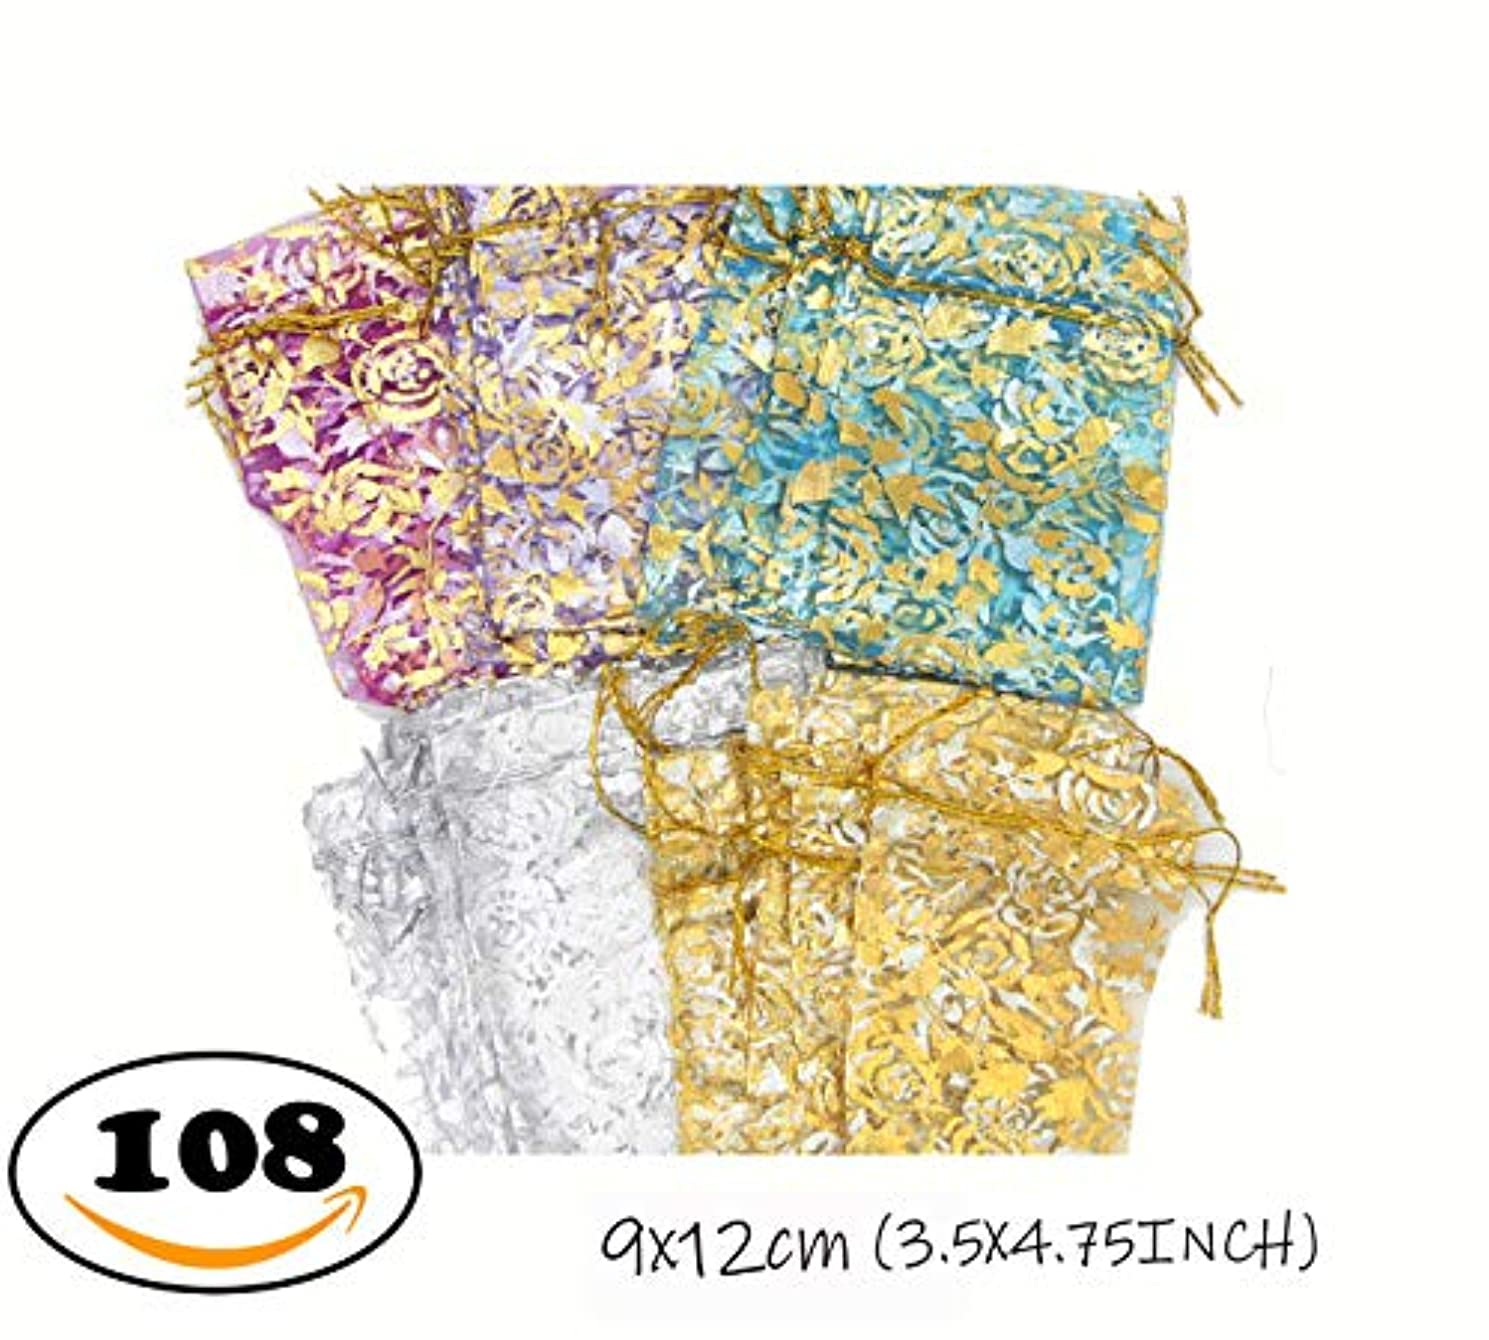 Charlotte 108PCS Organza Drawstring Gift Bags, Wedding Party Favor Present Bags Jewelry Pouches with Drawstring. (3.5X4.75 INCH, Mix Rose)/CB-001M